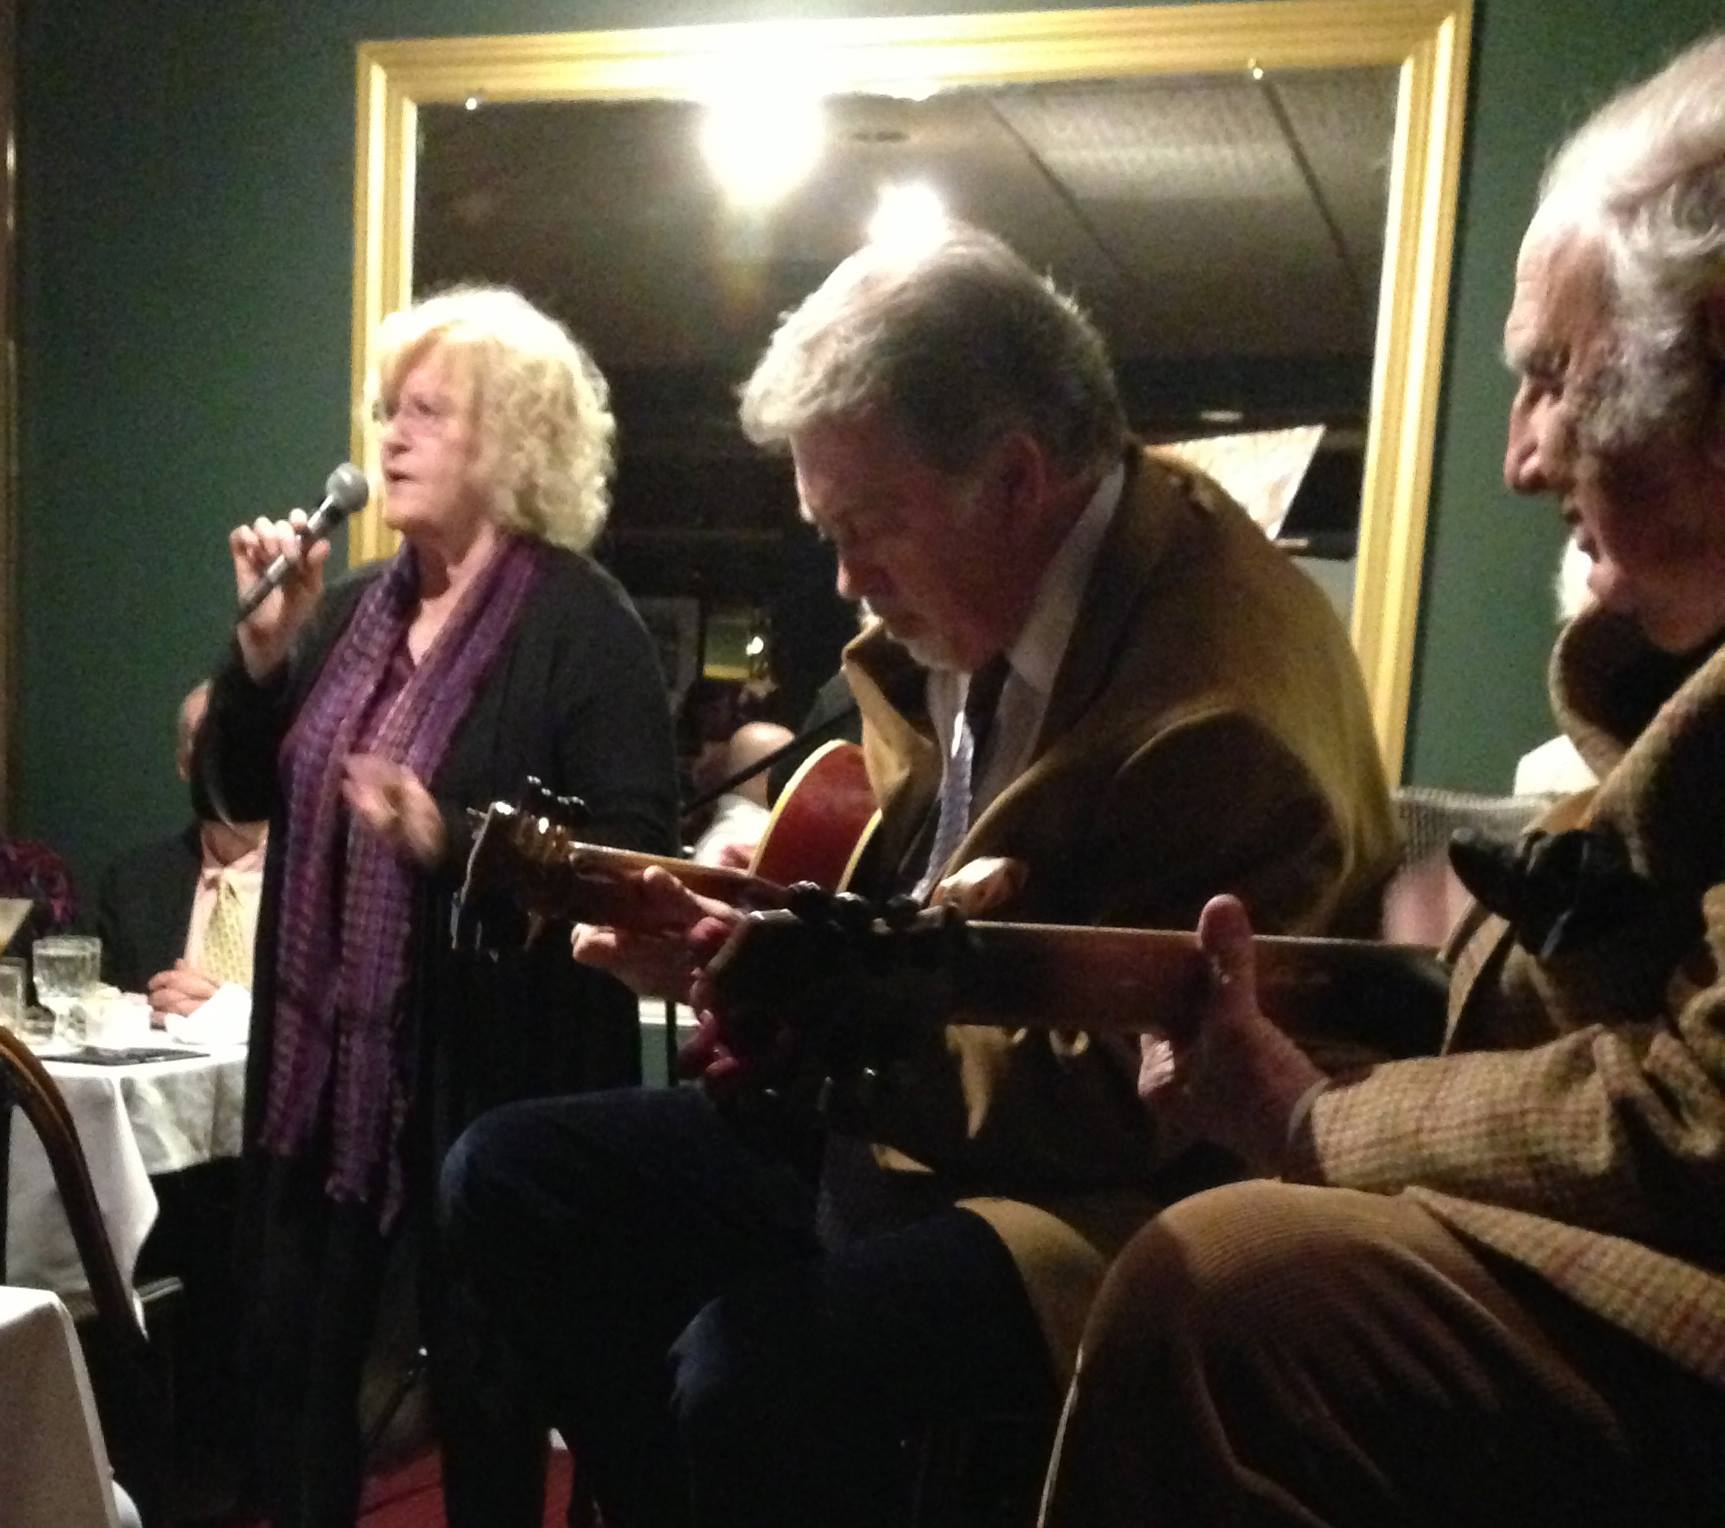 - Performing with Bucky Pizzarelli